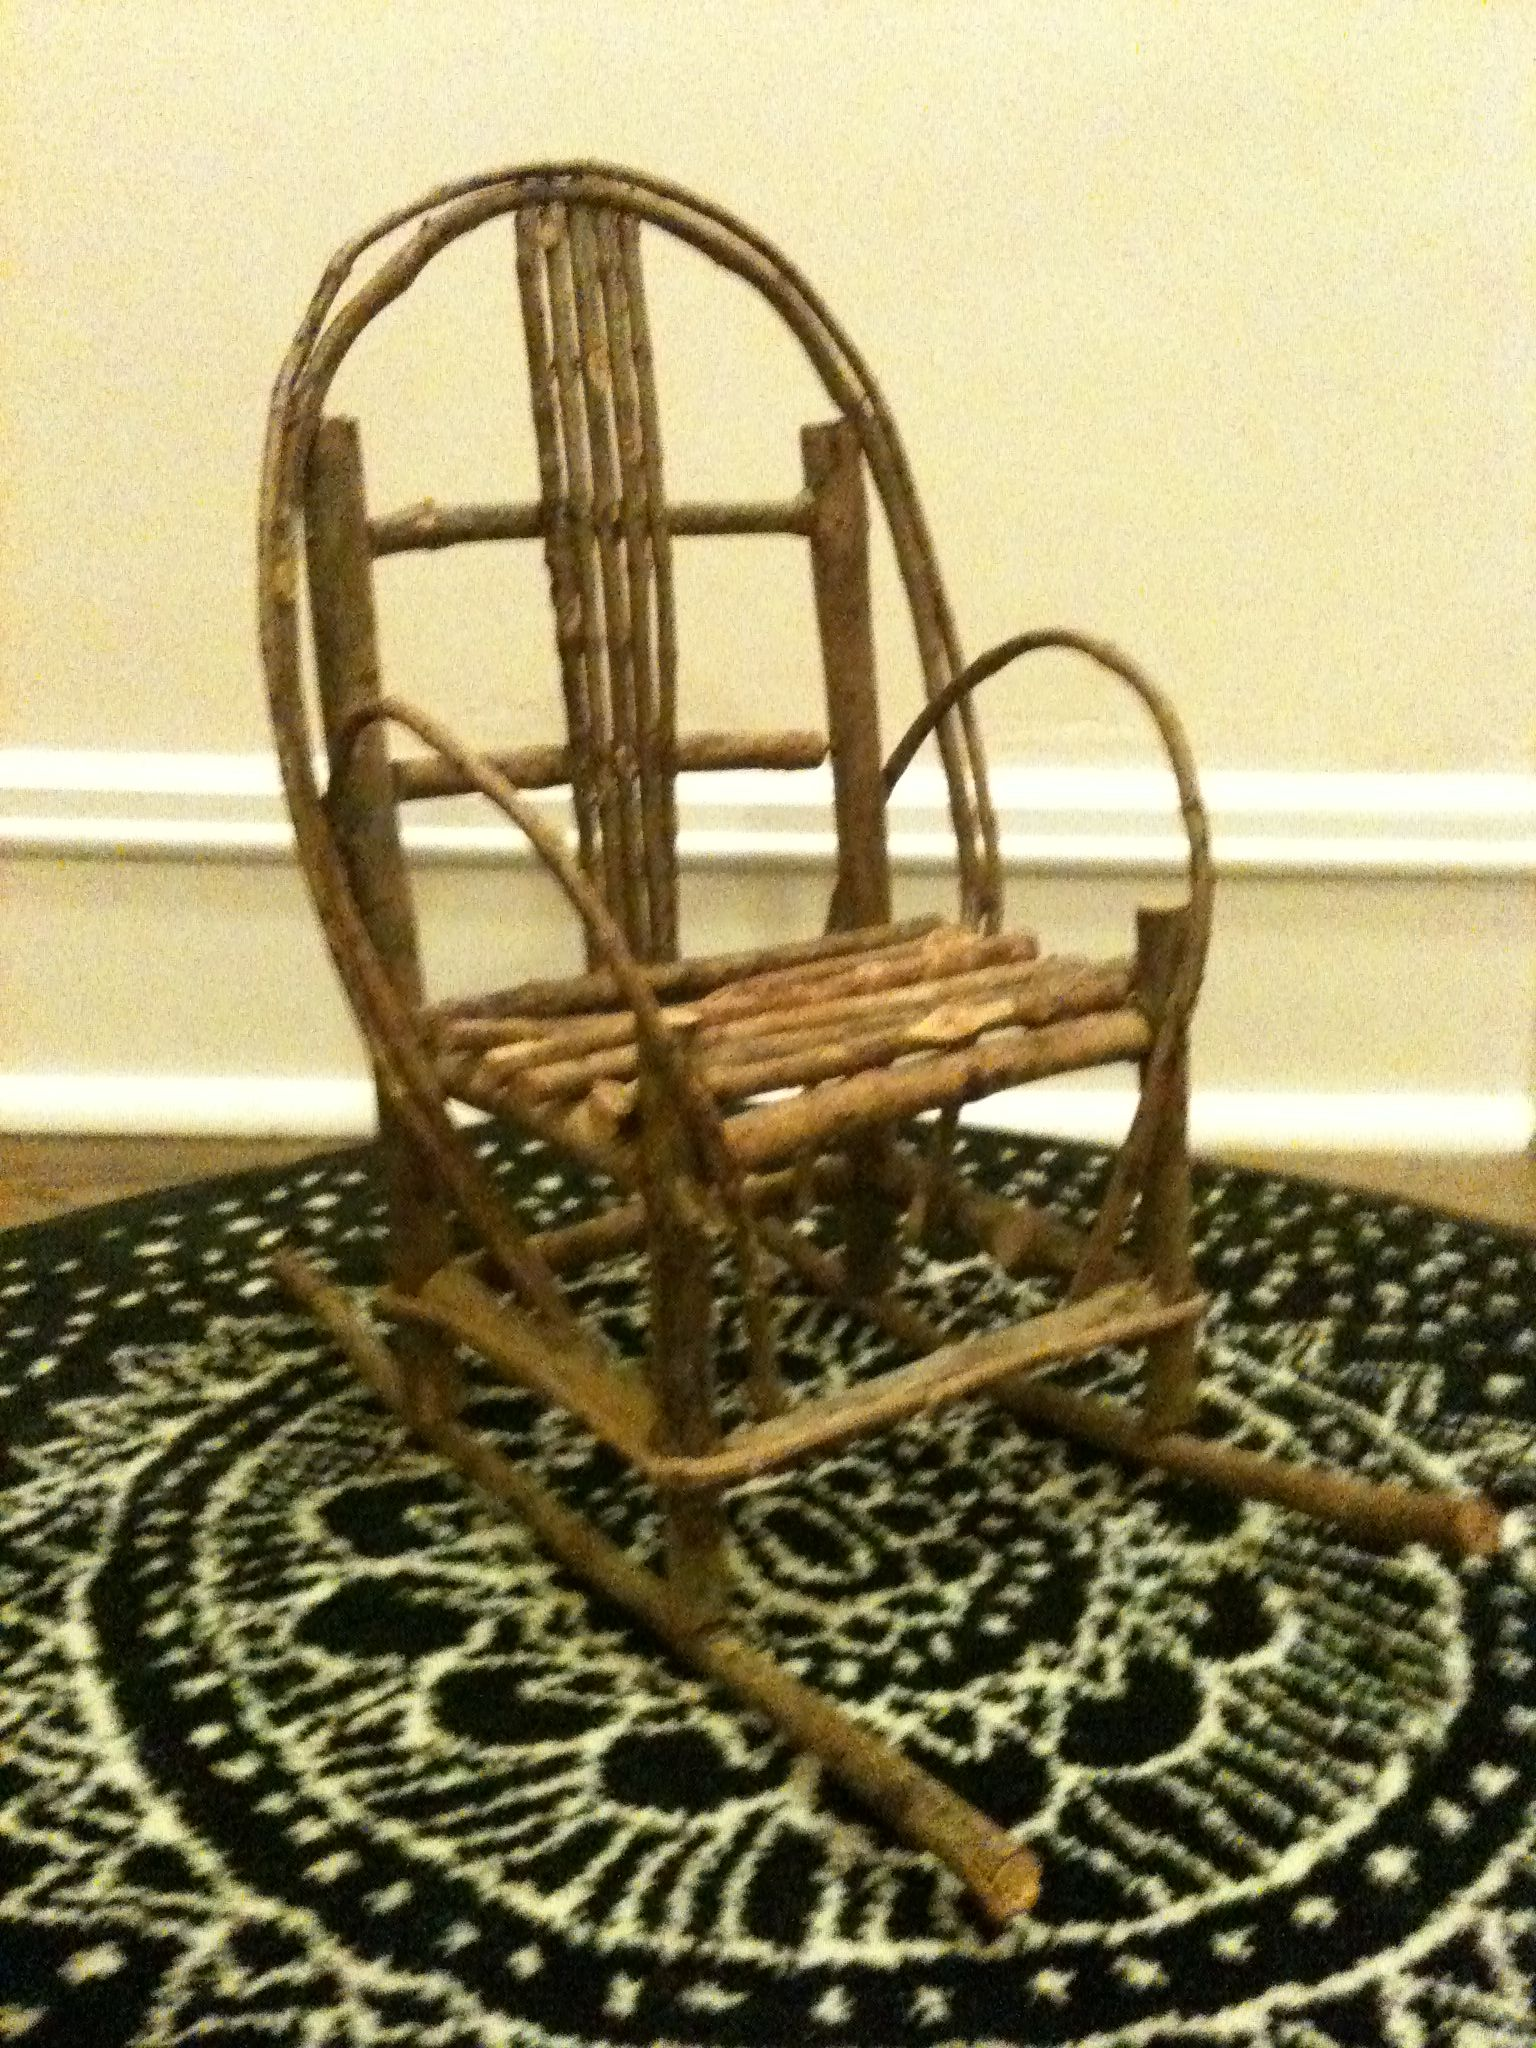 Rustic Tree Branch Doll Rocker Available for sale to you